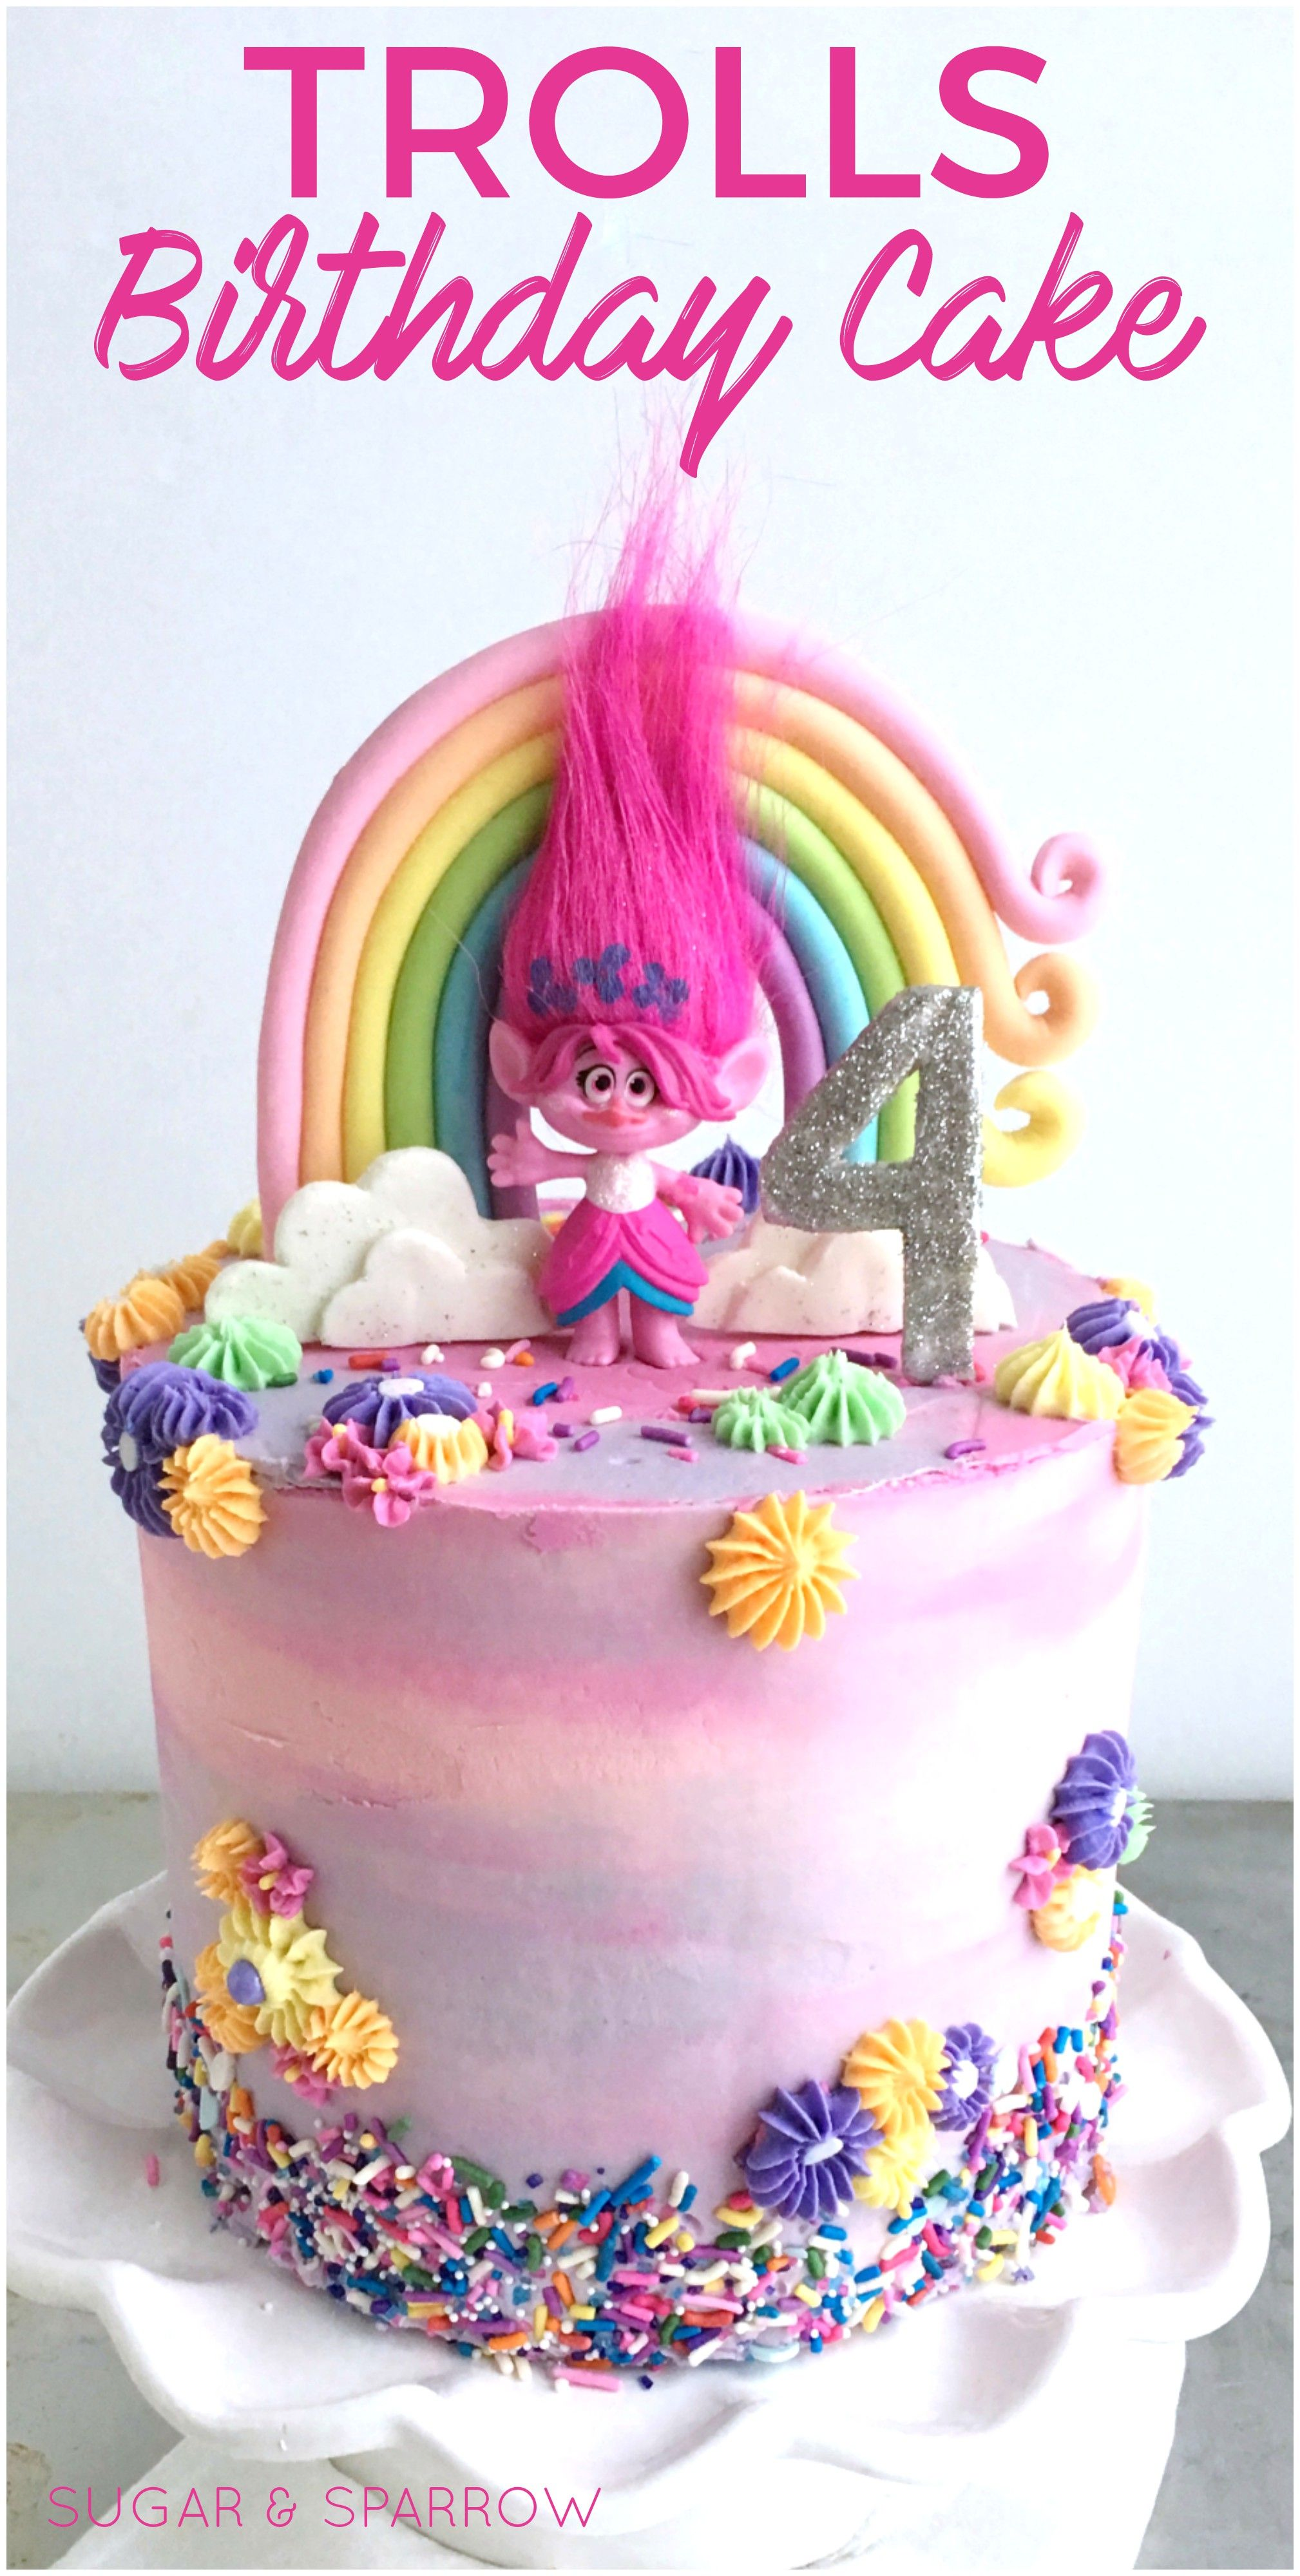 Trolls Birthday Cake With Fondant Rainbow And Edible Glitter By